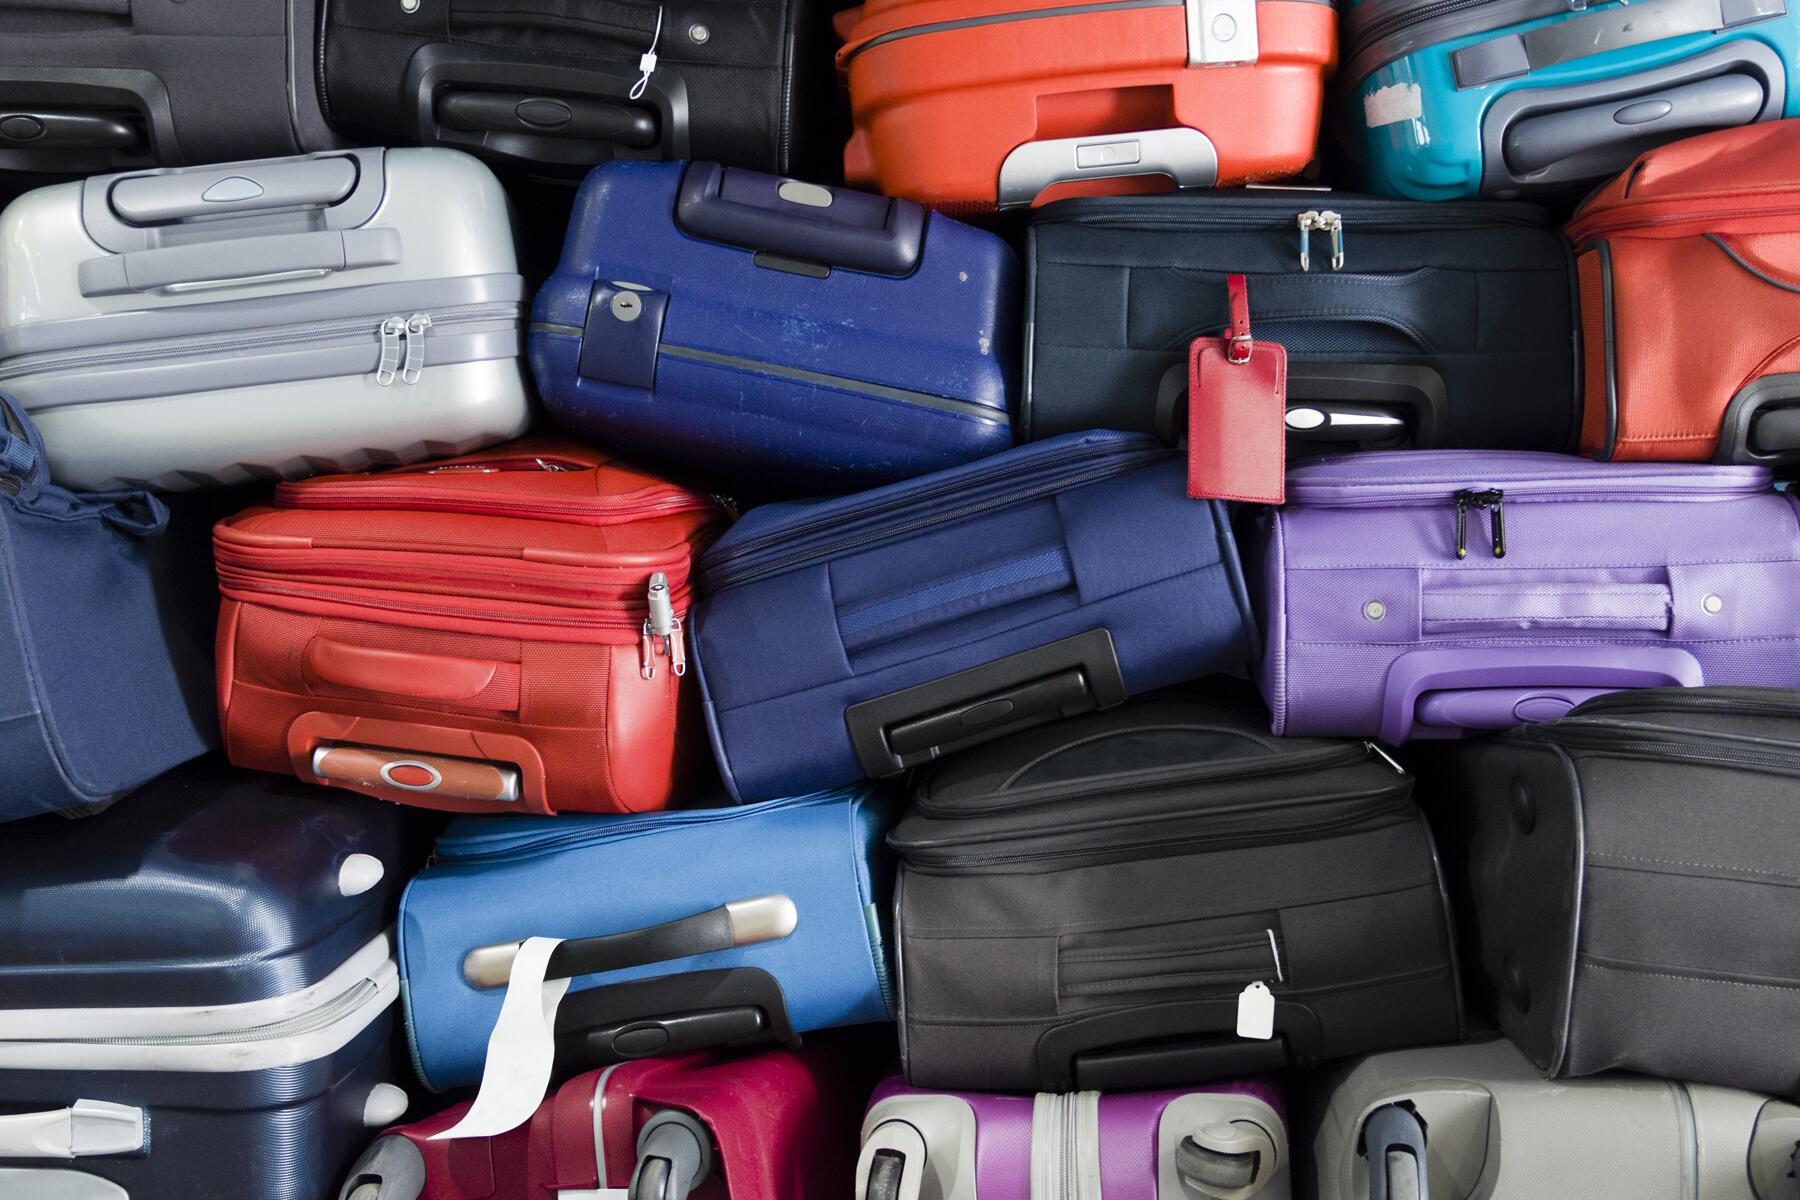 Best Apps to Help With Storing Luggage